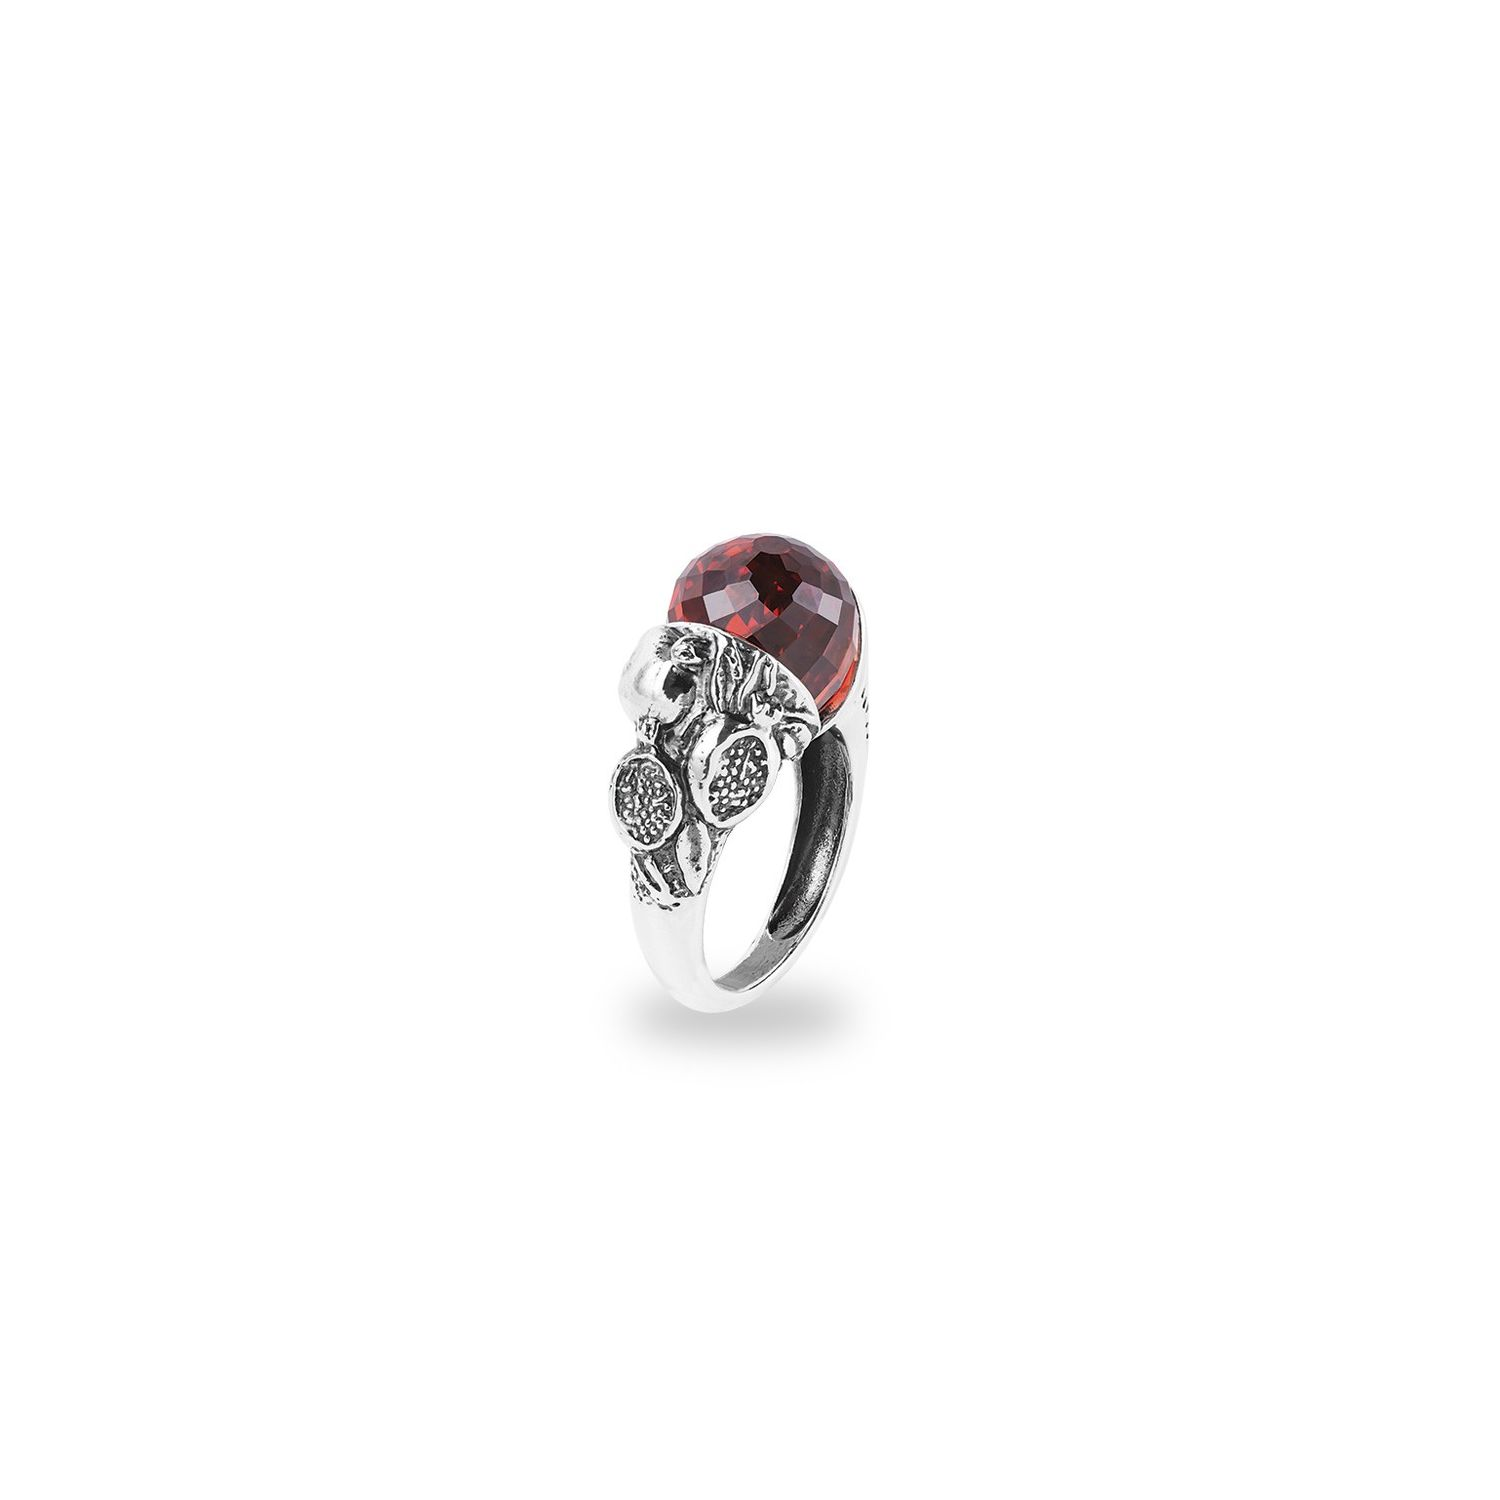 Seasons Summer Ring with stone (27770)